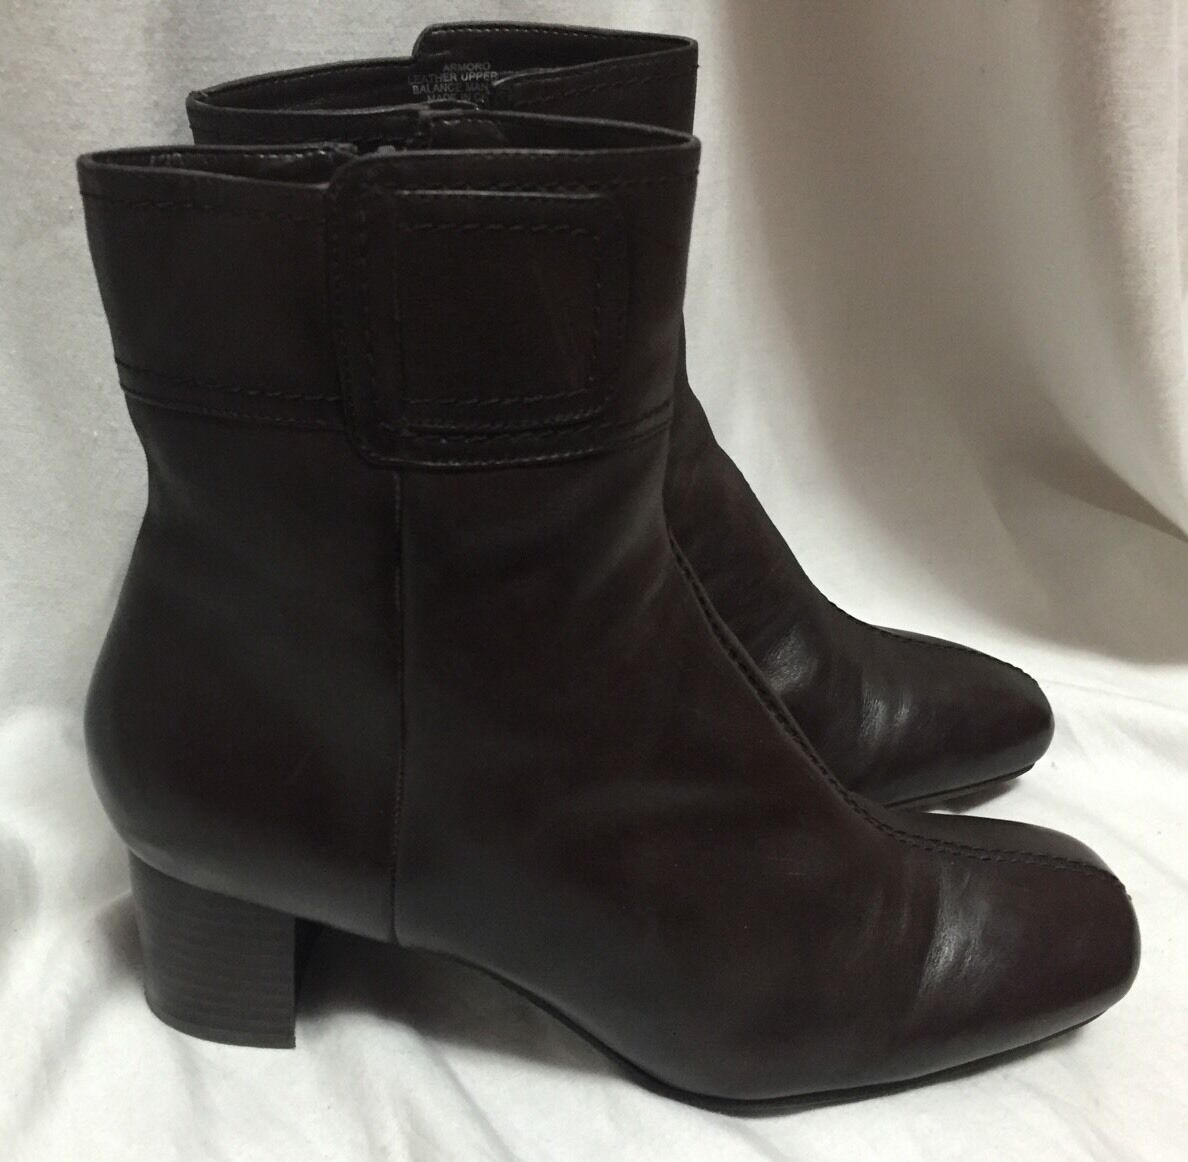 Nine West Brown Womens Ankle Booties Leather 7.5M Heels Belted Amoro FashionShoe